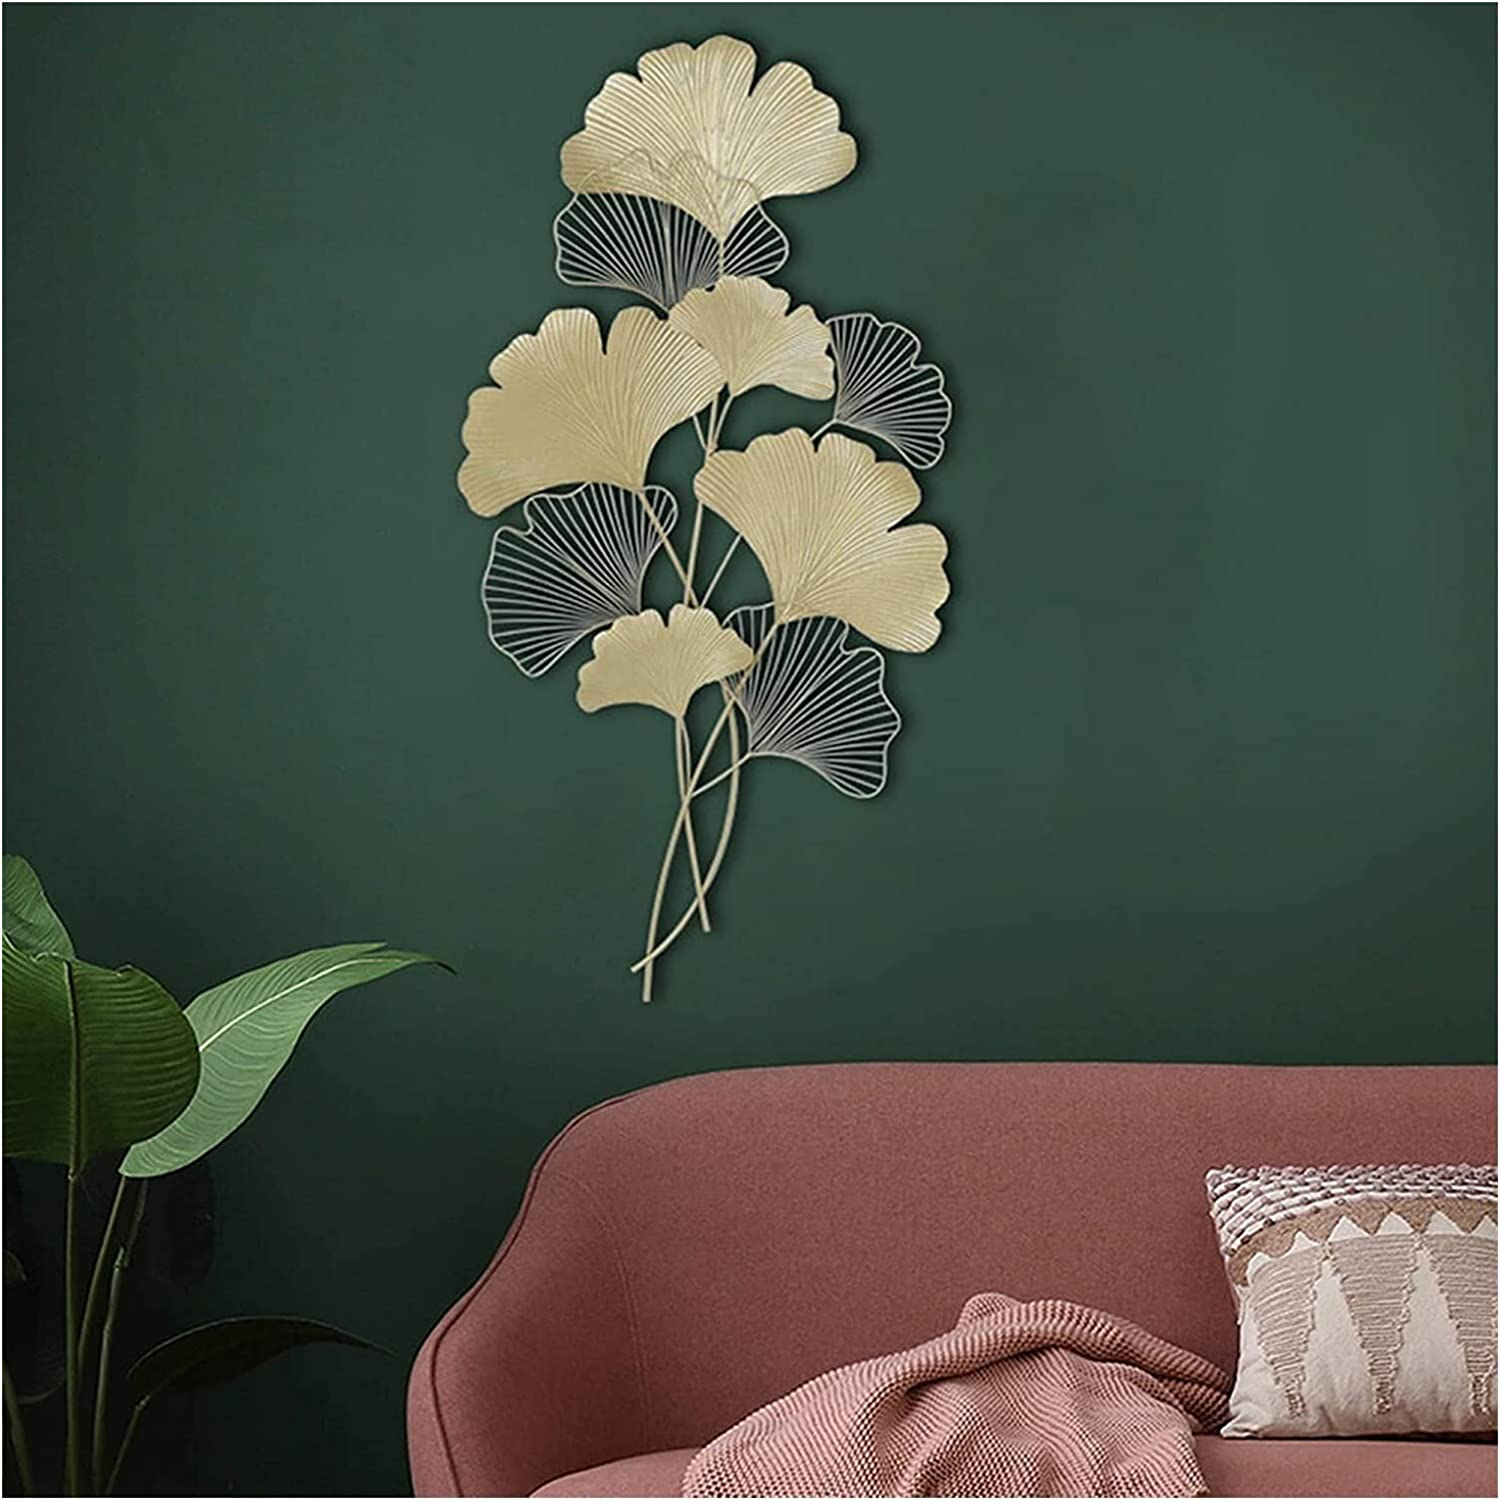 Home Metal Wall Decor,Golden Ginkgo Leaf Wall Hanging Decorations,Gold Metal Art Wall Sculpture,Christmas Leaves Ornament,creative Contemporary Artwork Ornament Durable Smooth For Living Room,Office 2